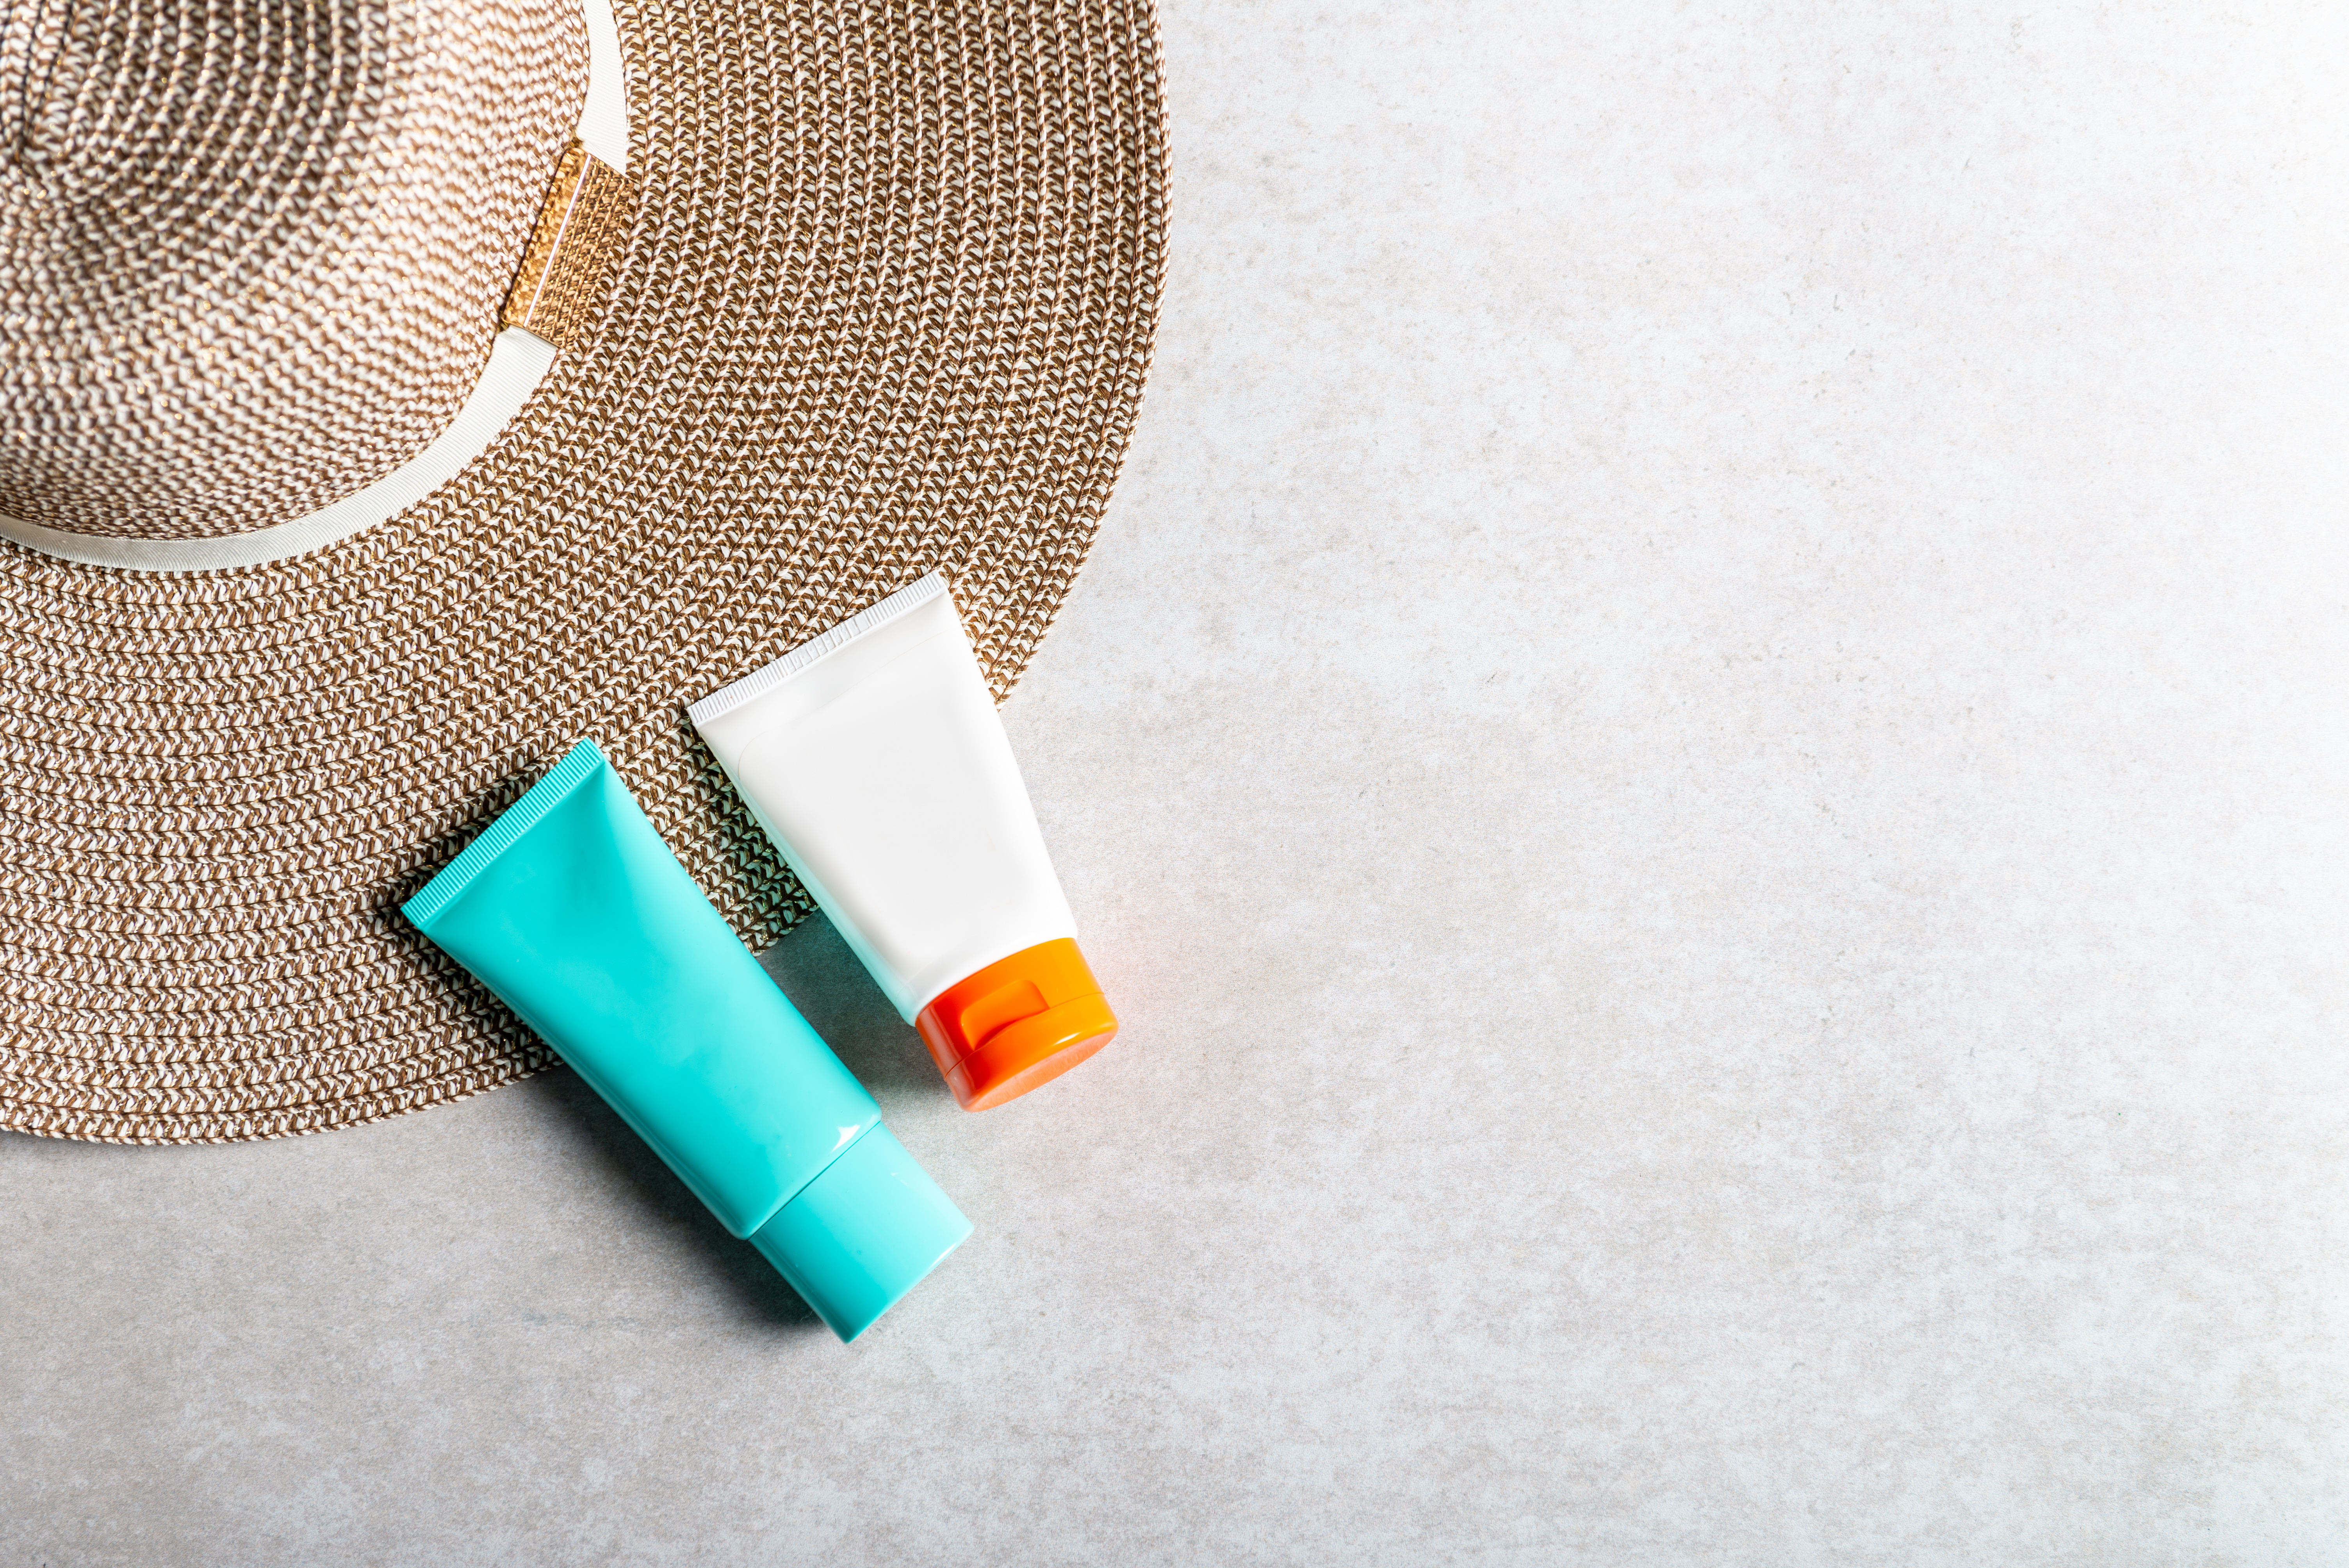 Safe Sunscreen For You and the Sea